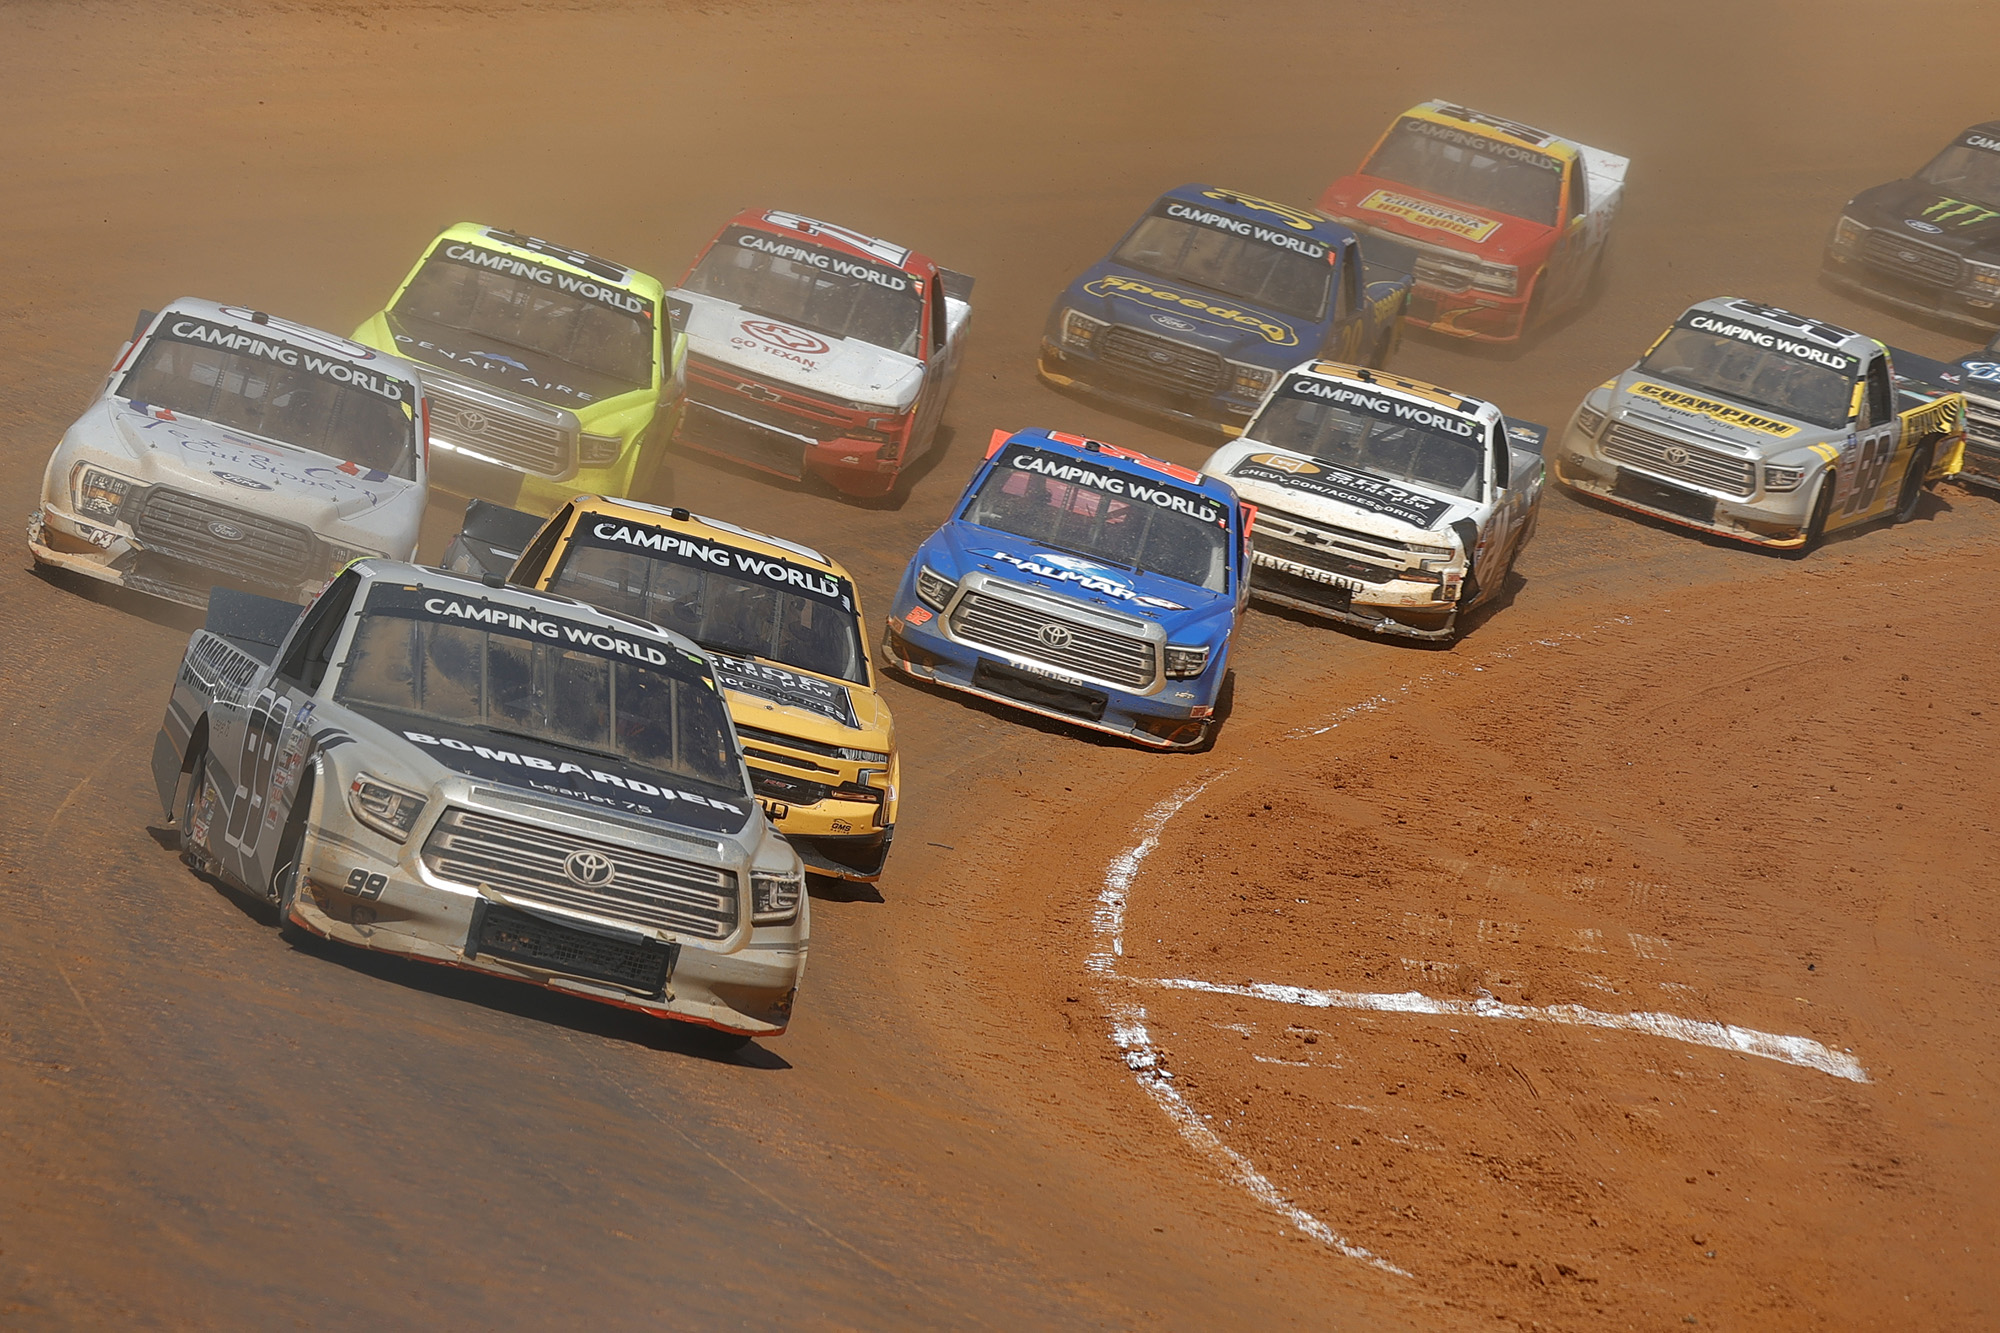 NASCAR Camping World Truck Series Pinty's Truck Race on Dirt